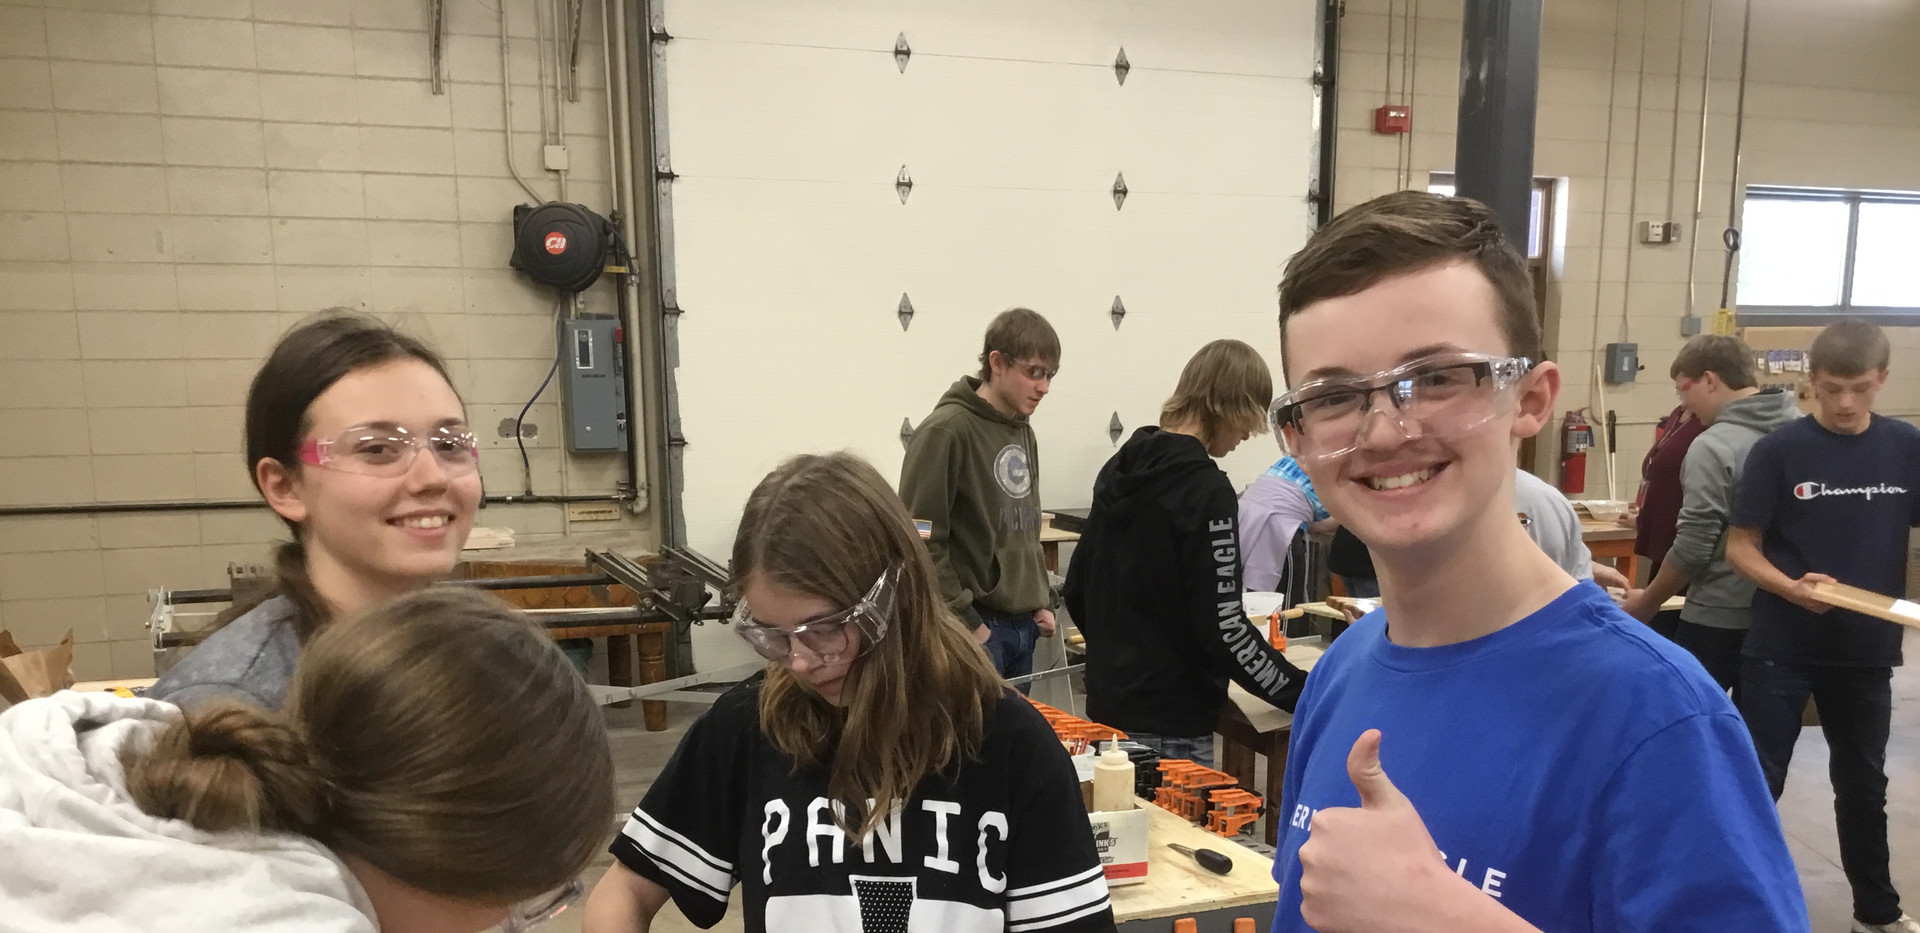 Olivia, Sydney, Greyson, and Serena working on cutting boards